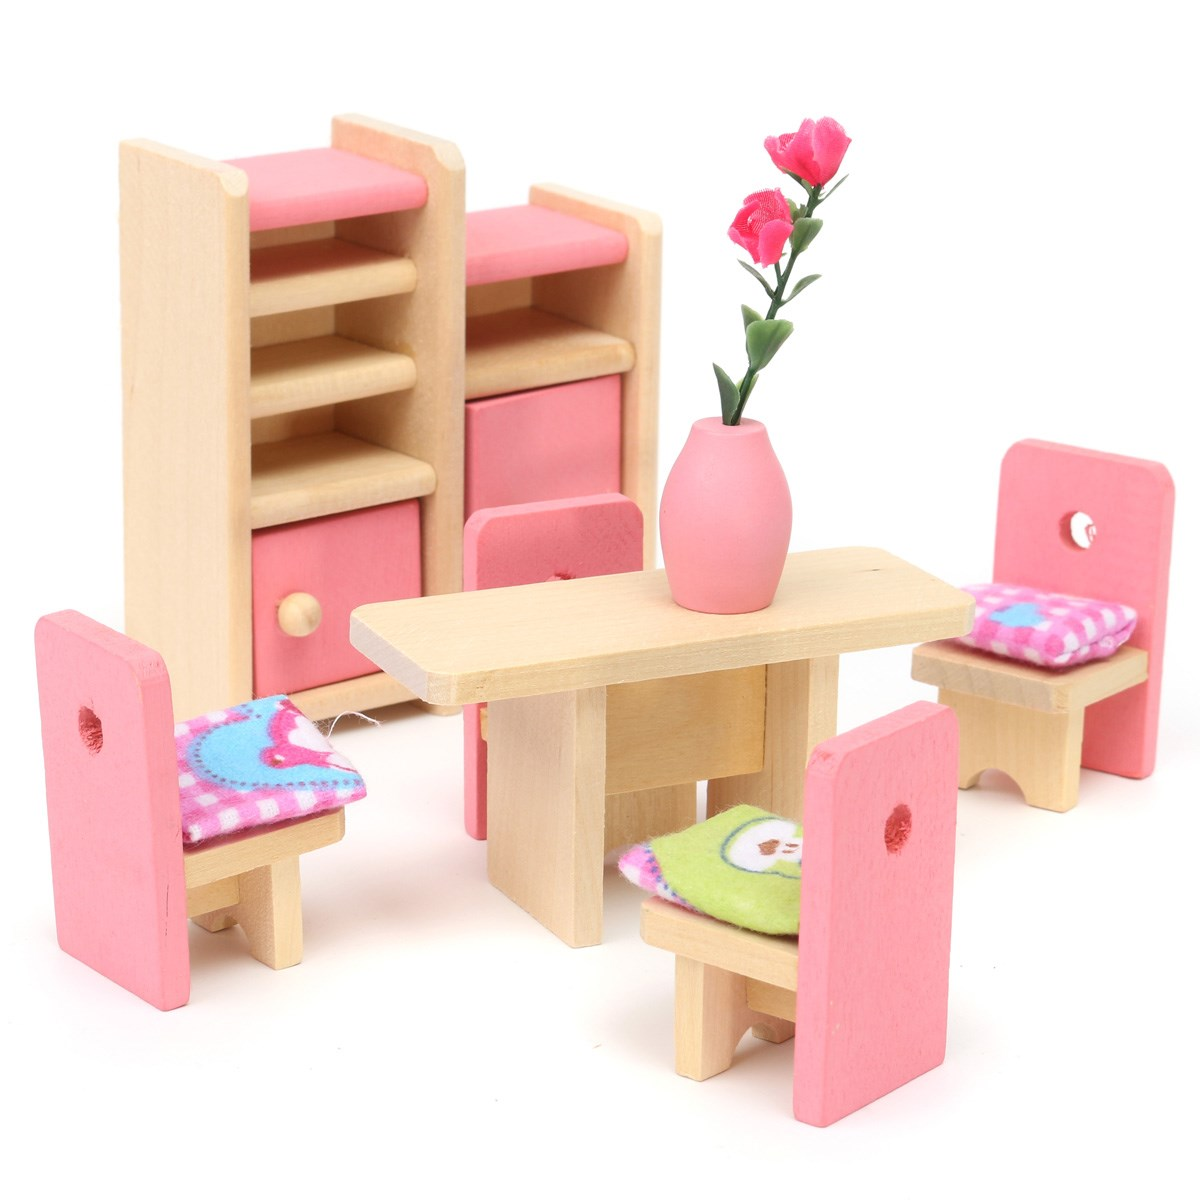 wooden delicate dollhouse furniture toys miniature for kids children pretend play 6 room set4 cheap wooden dollhouse furniture